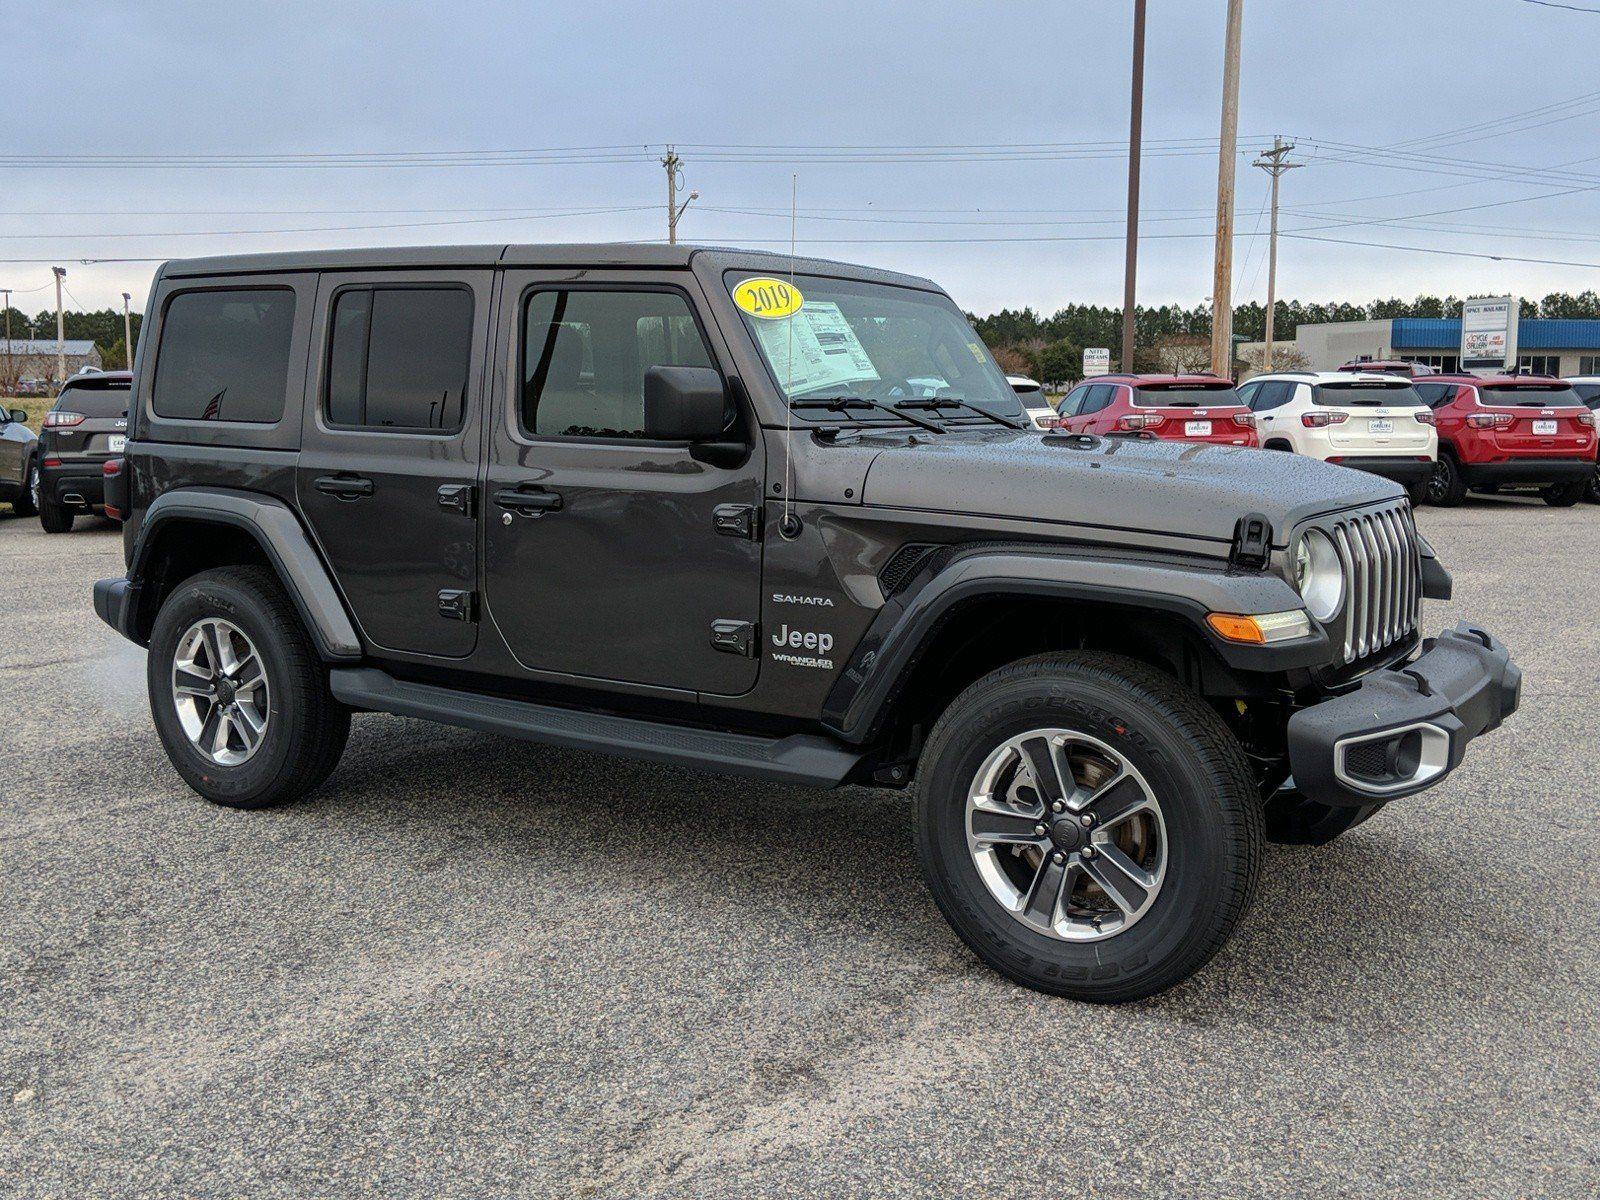 106 New Cdjr Vehicles In Stock Jeep Wrangler For Sale Jeep